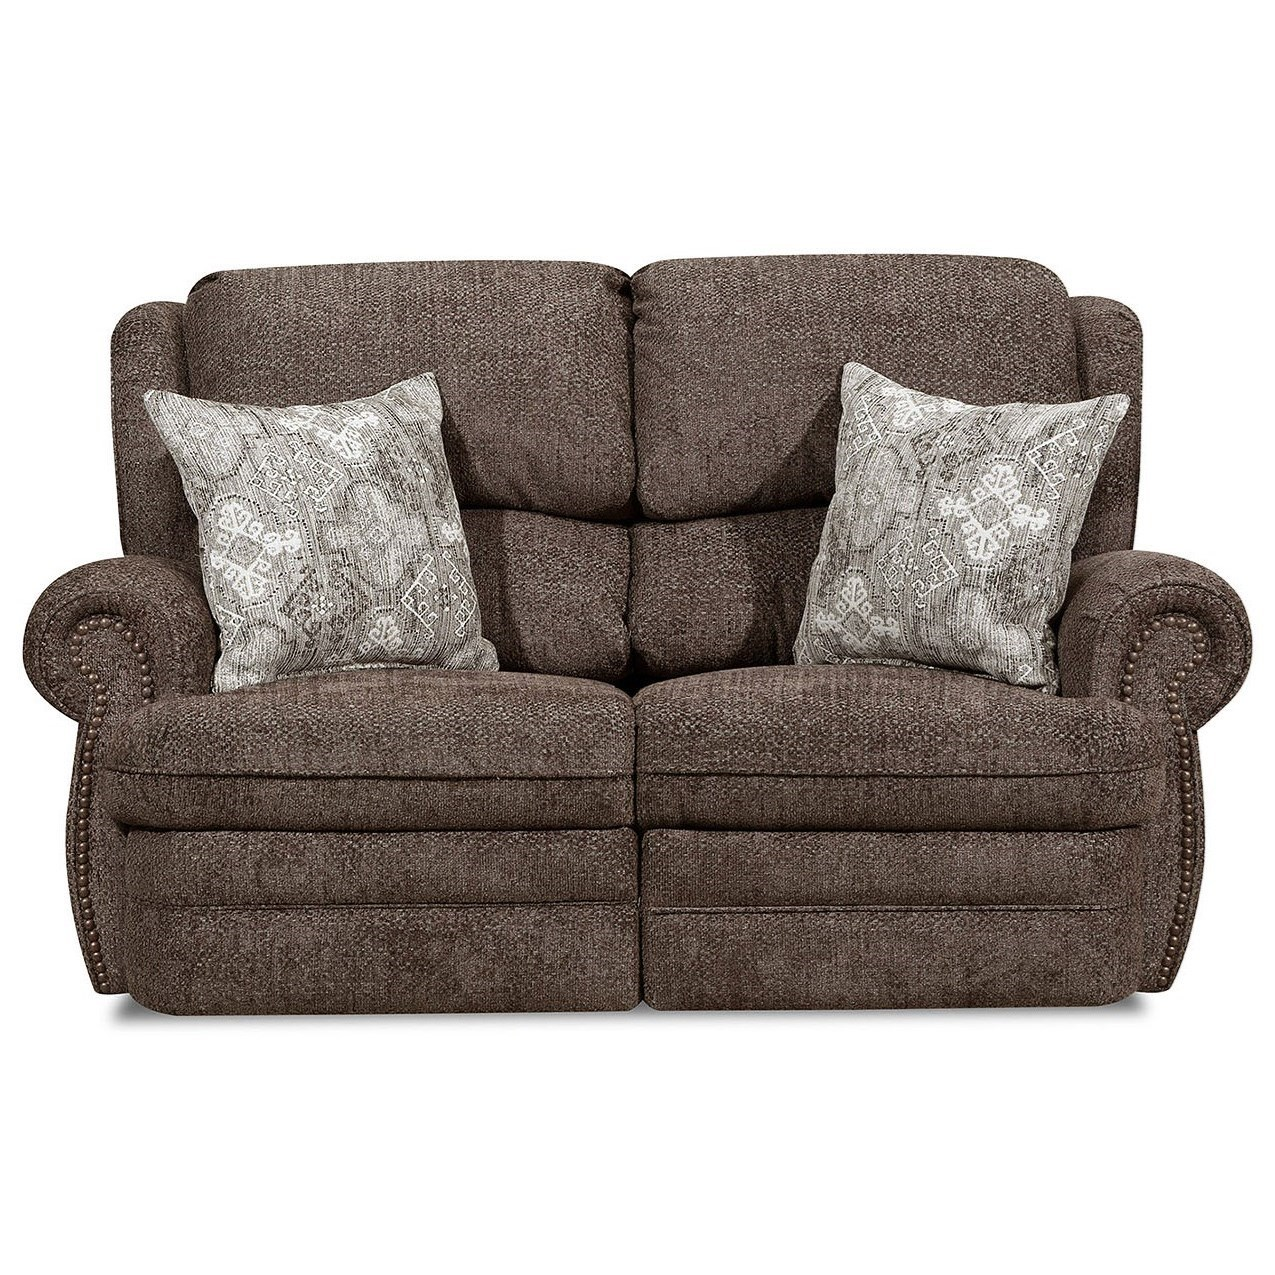 57000 Power Reclining Loveseat by United Furniture Industries at Bullard Furniture